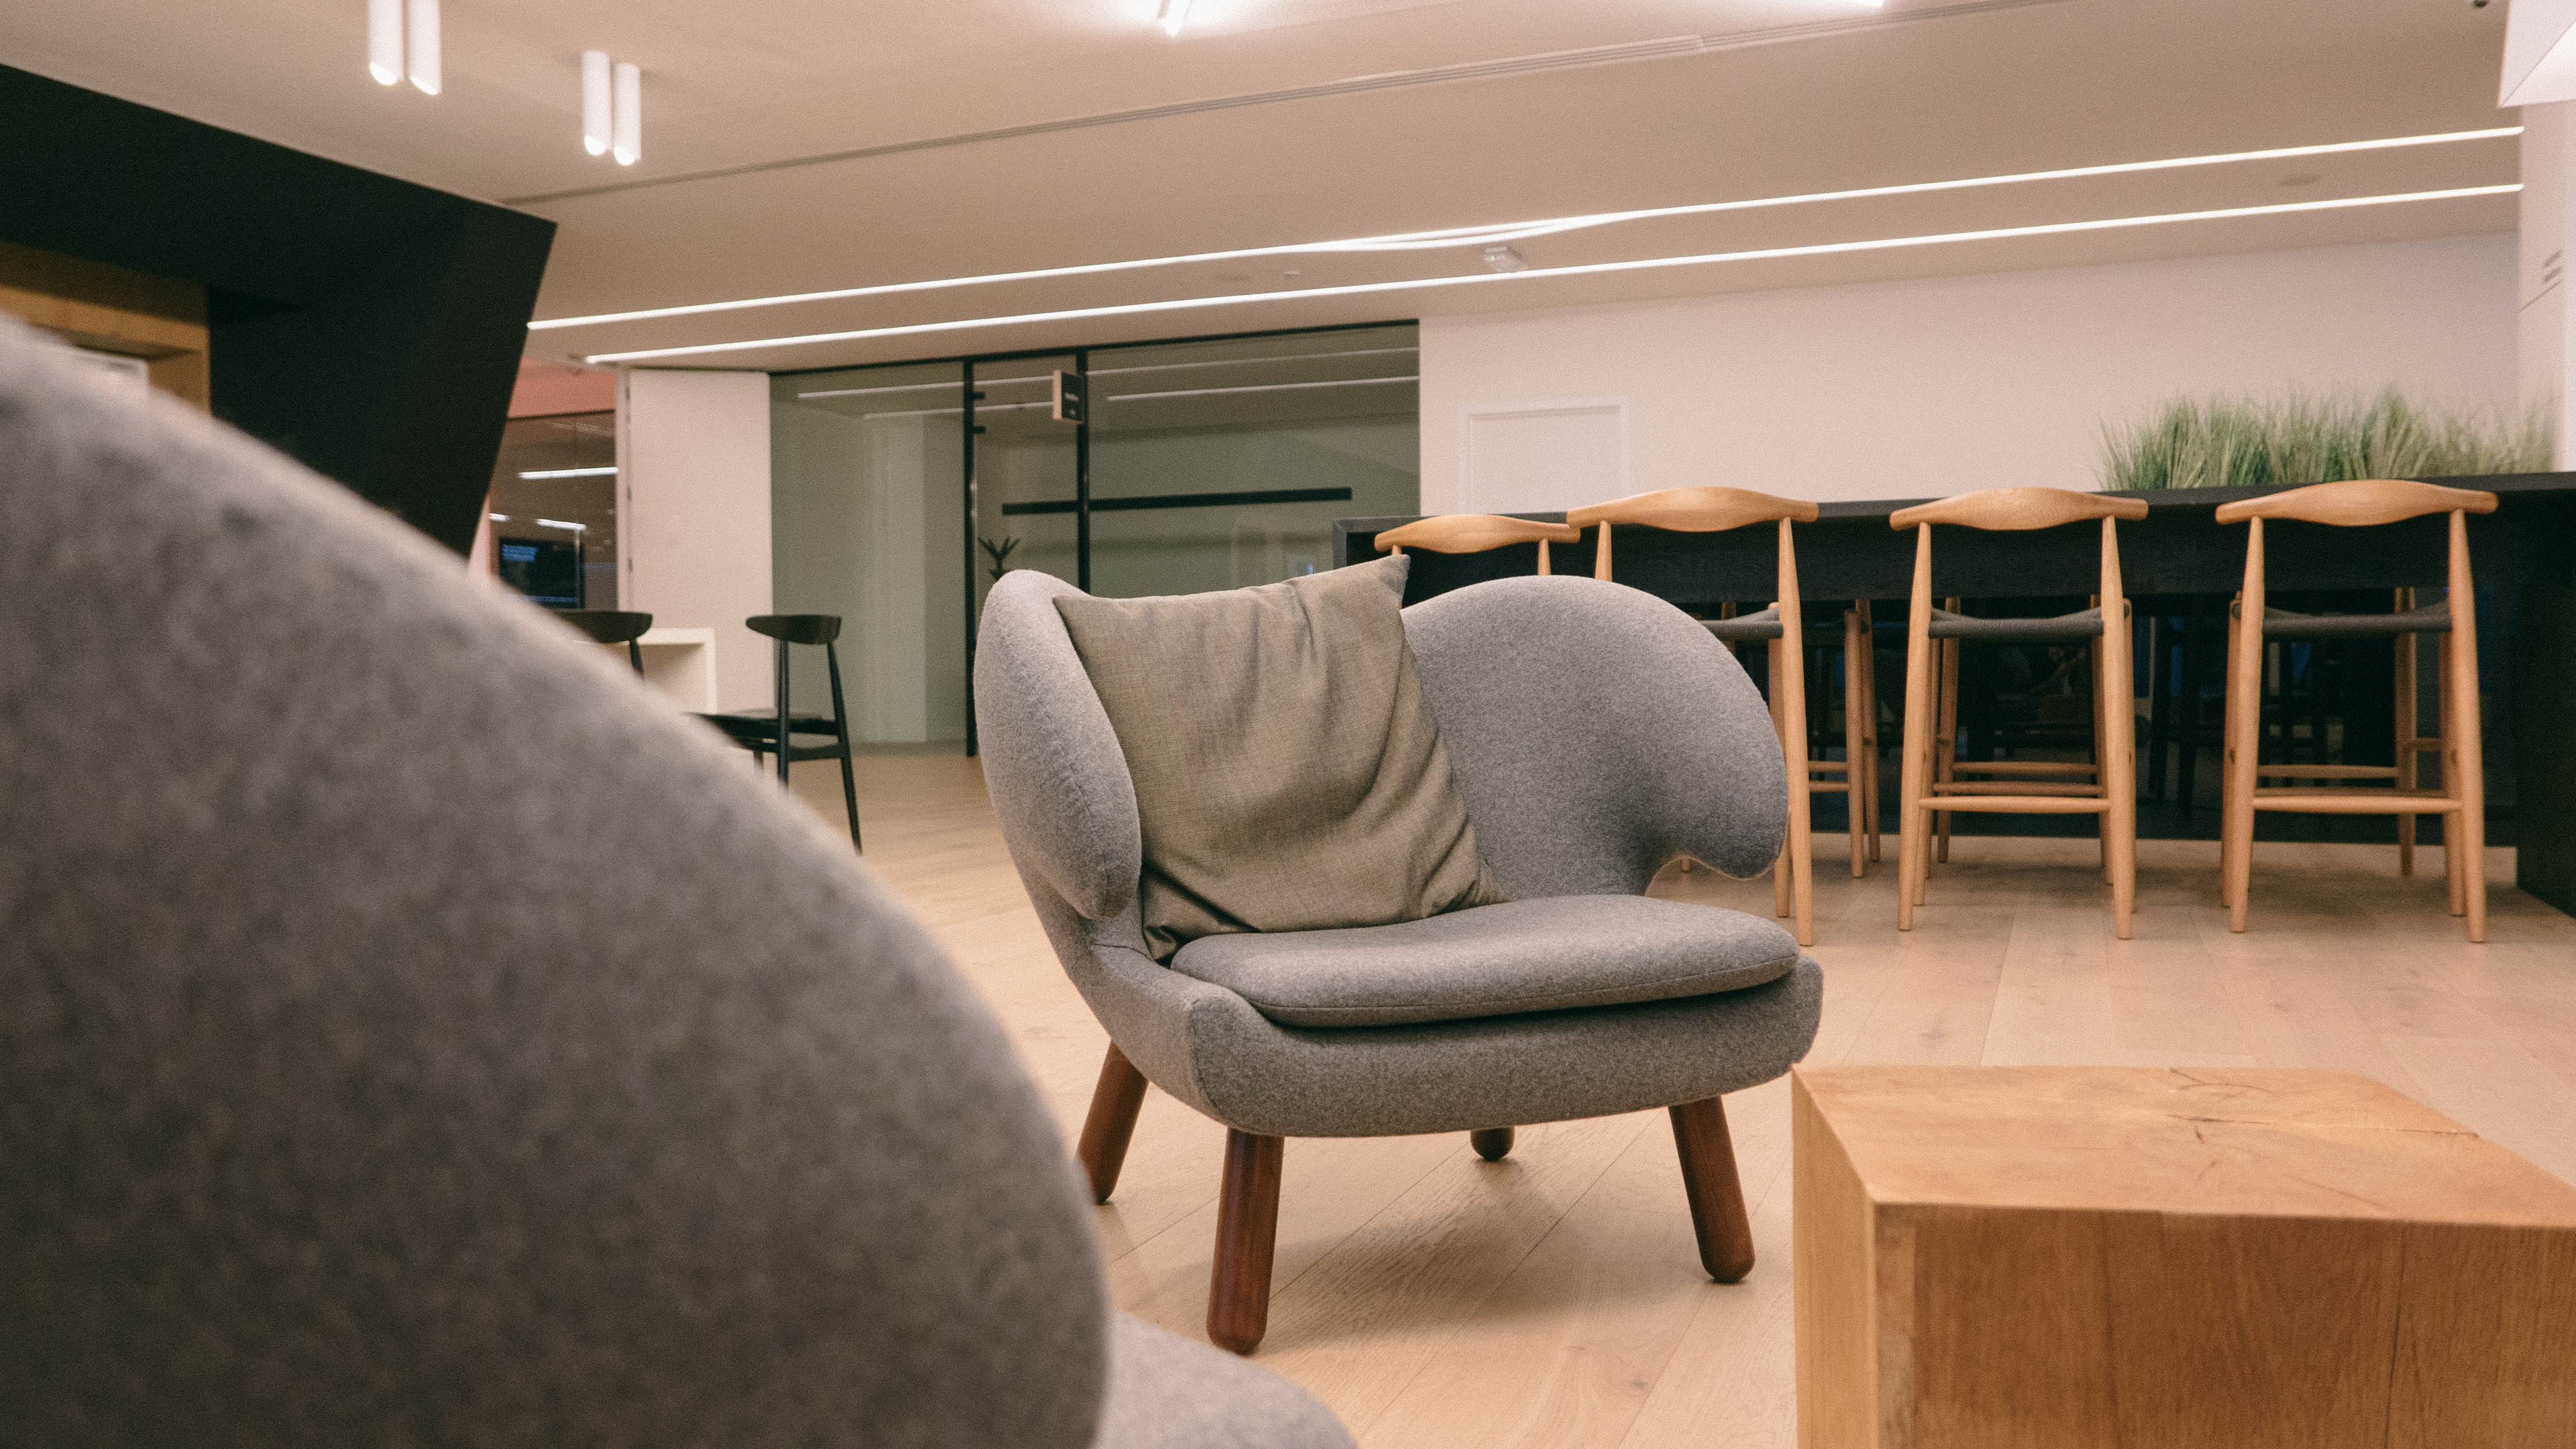 white fluffy desk chair reclining salon chairs best 100+ room pictures | download free images on unsplash